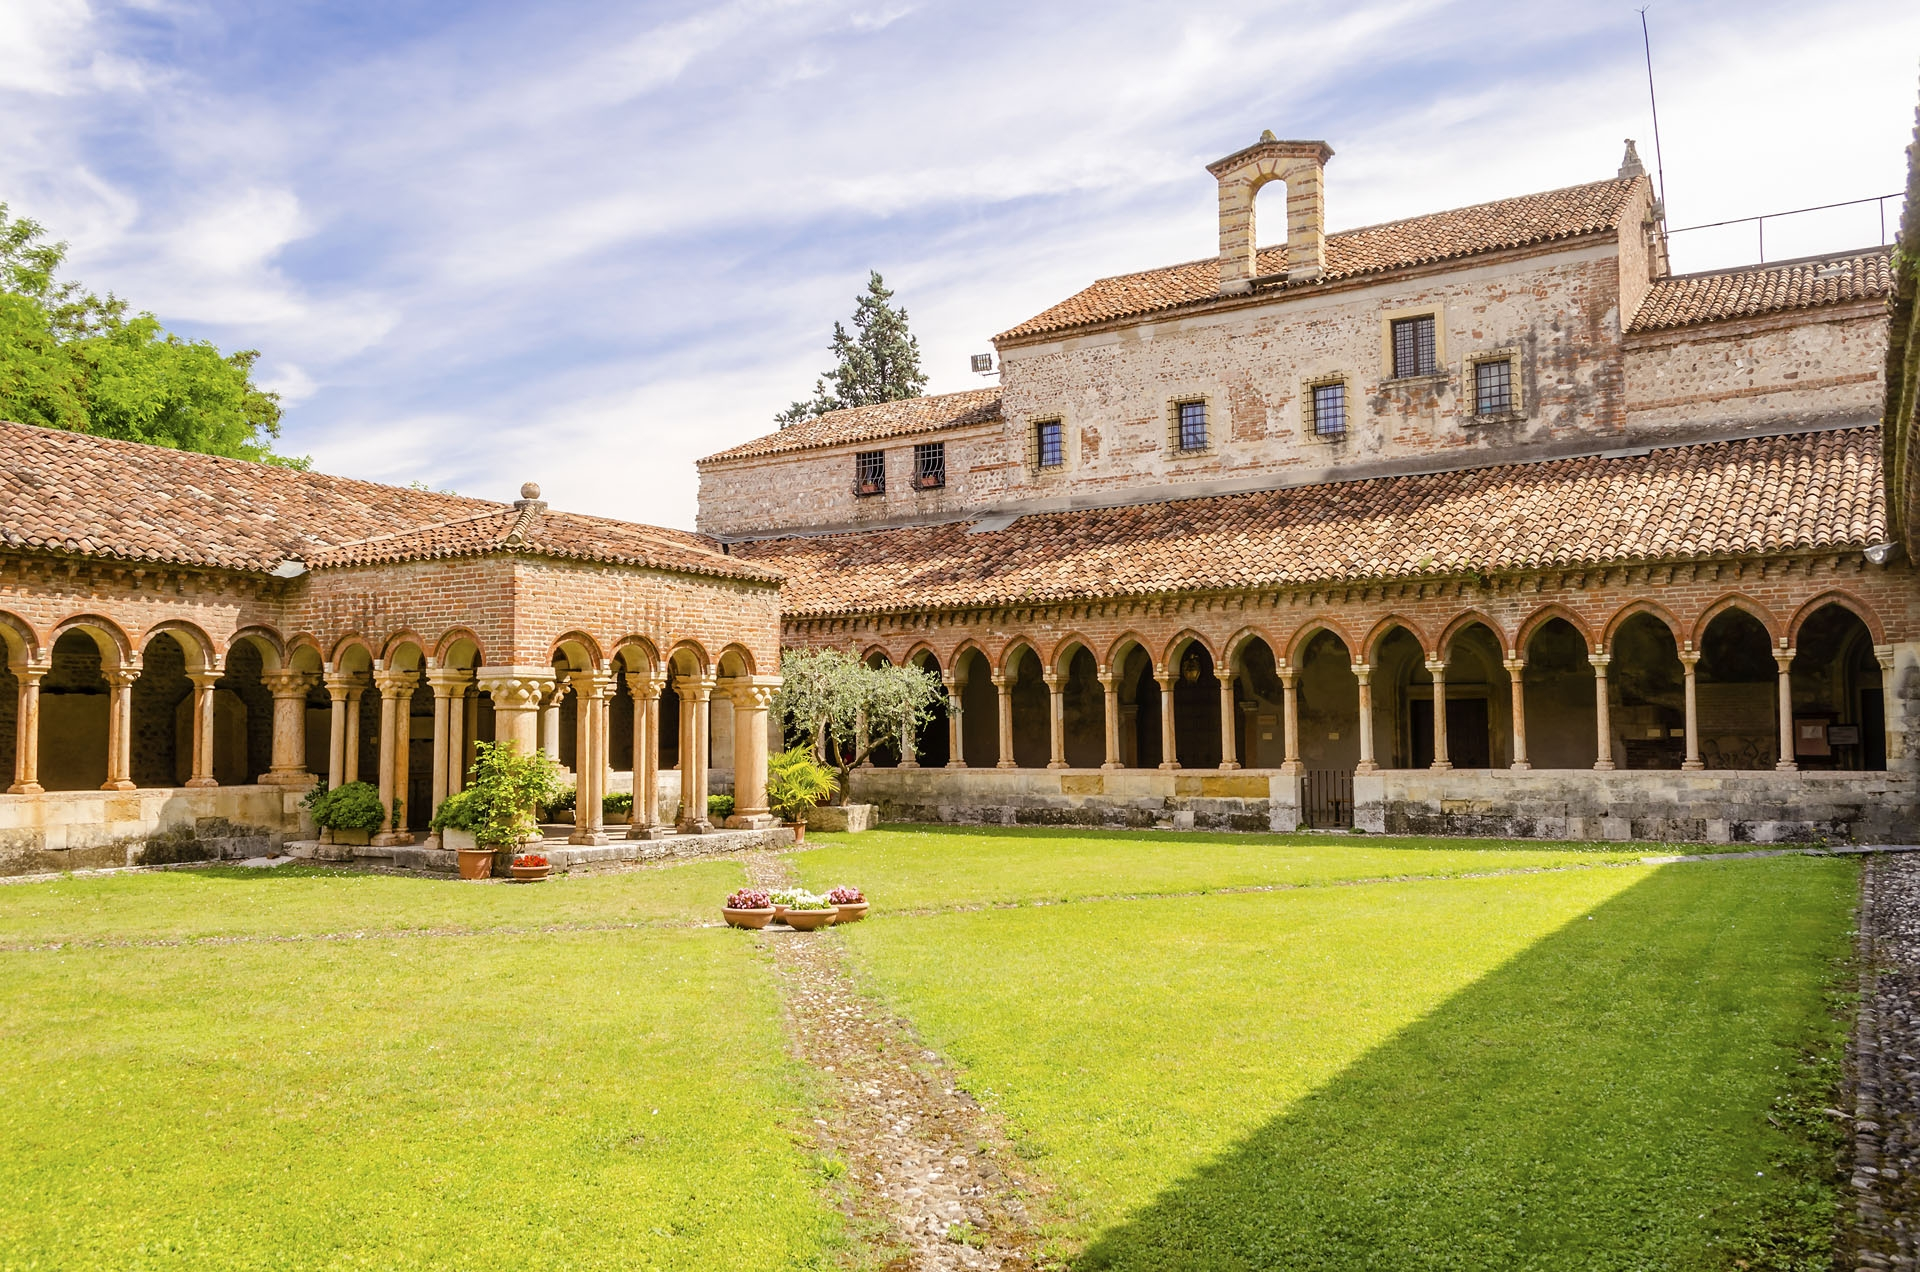 Cloister of San Zeno Cathedral in Verona, Italy